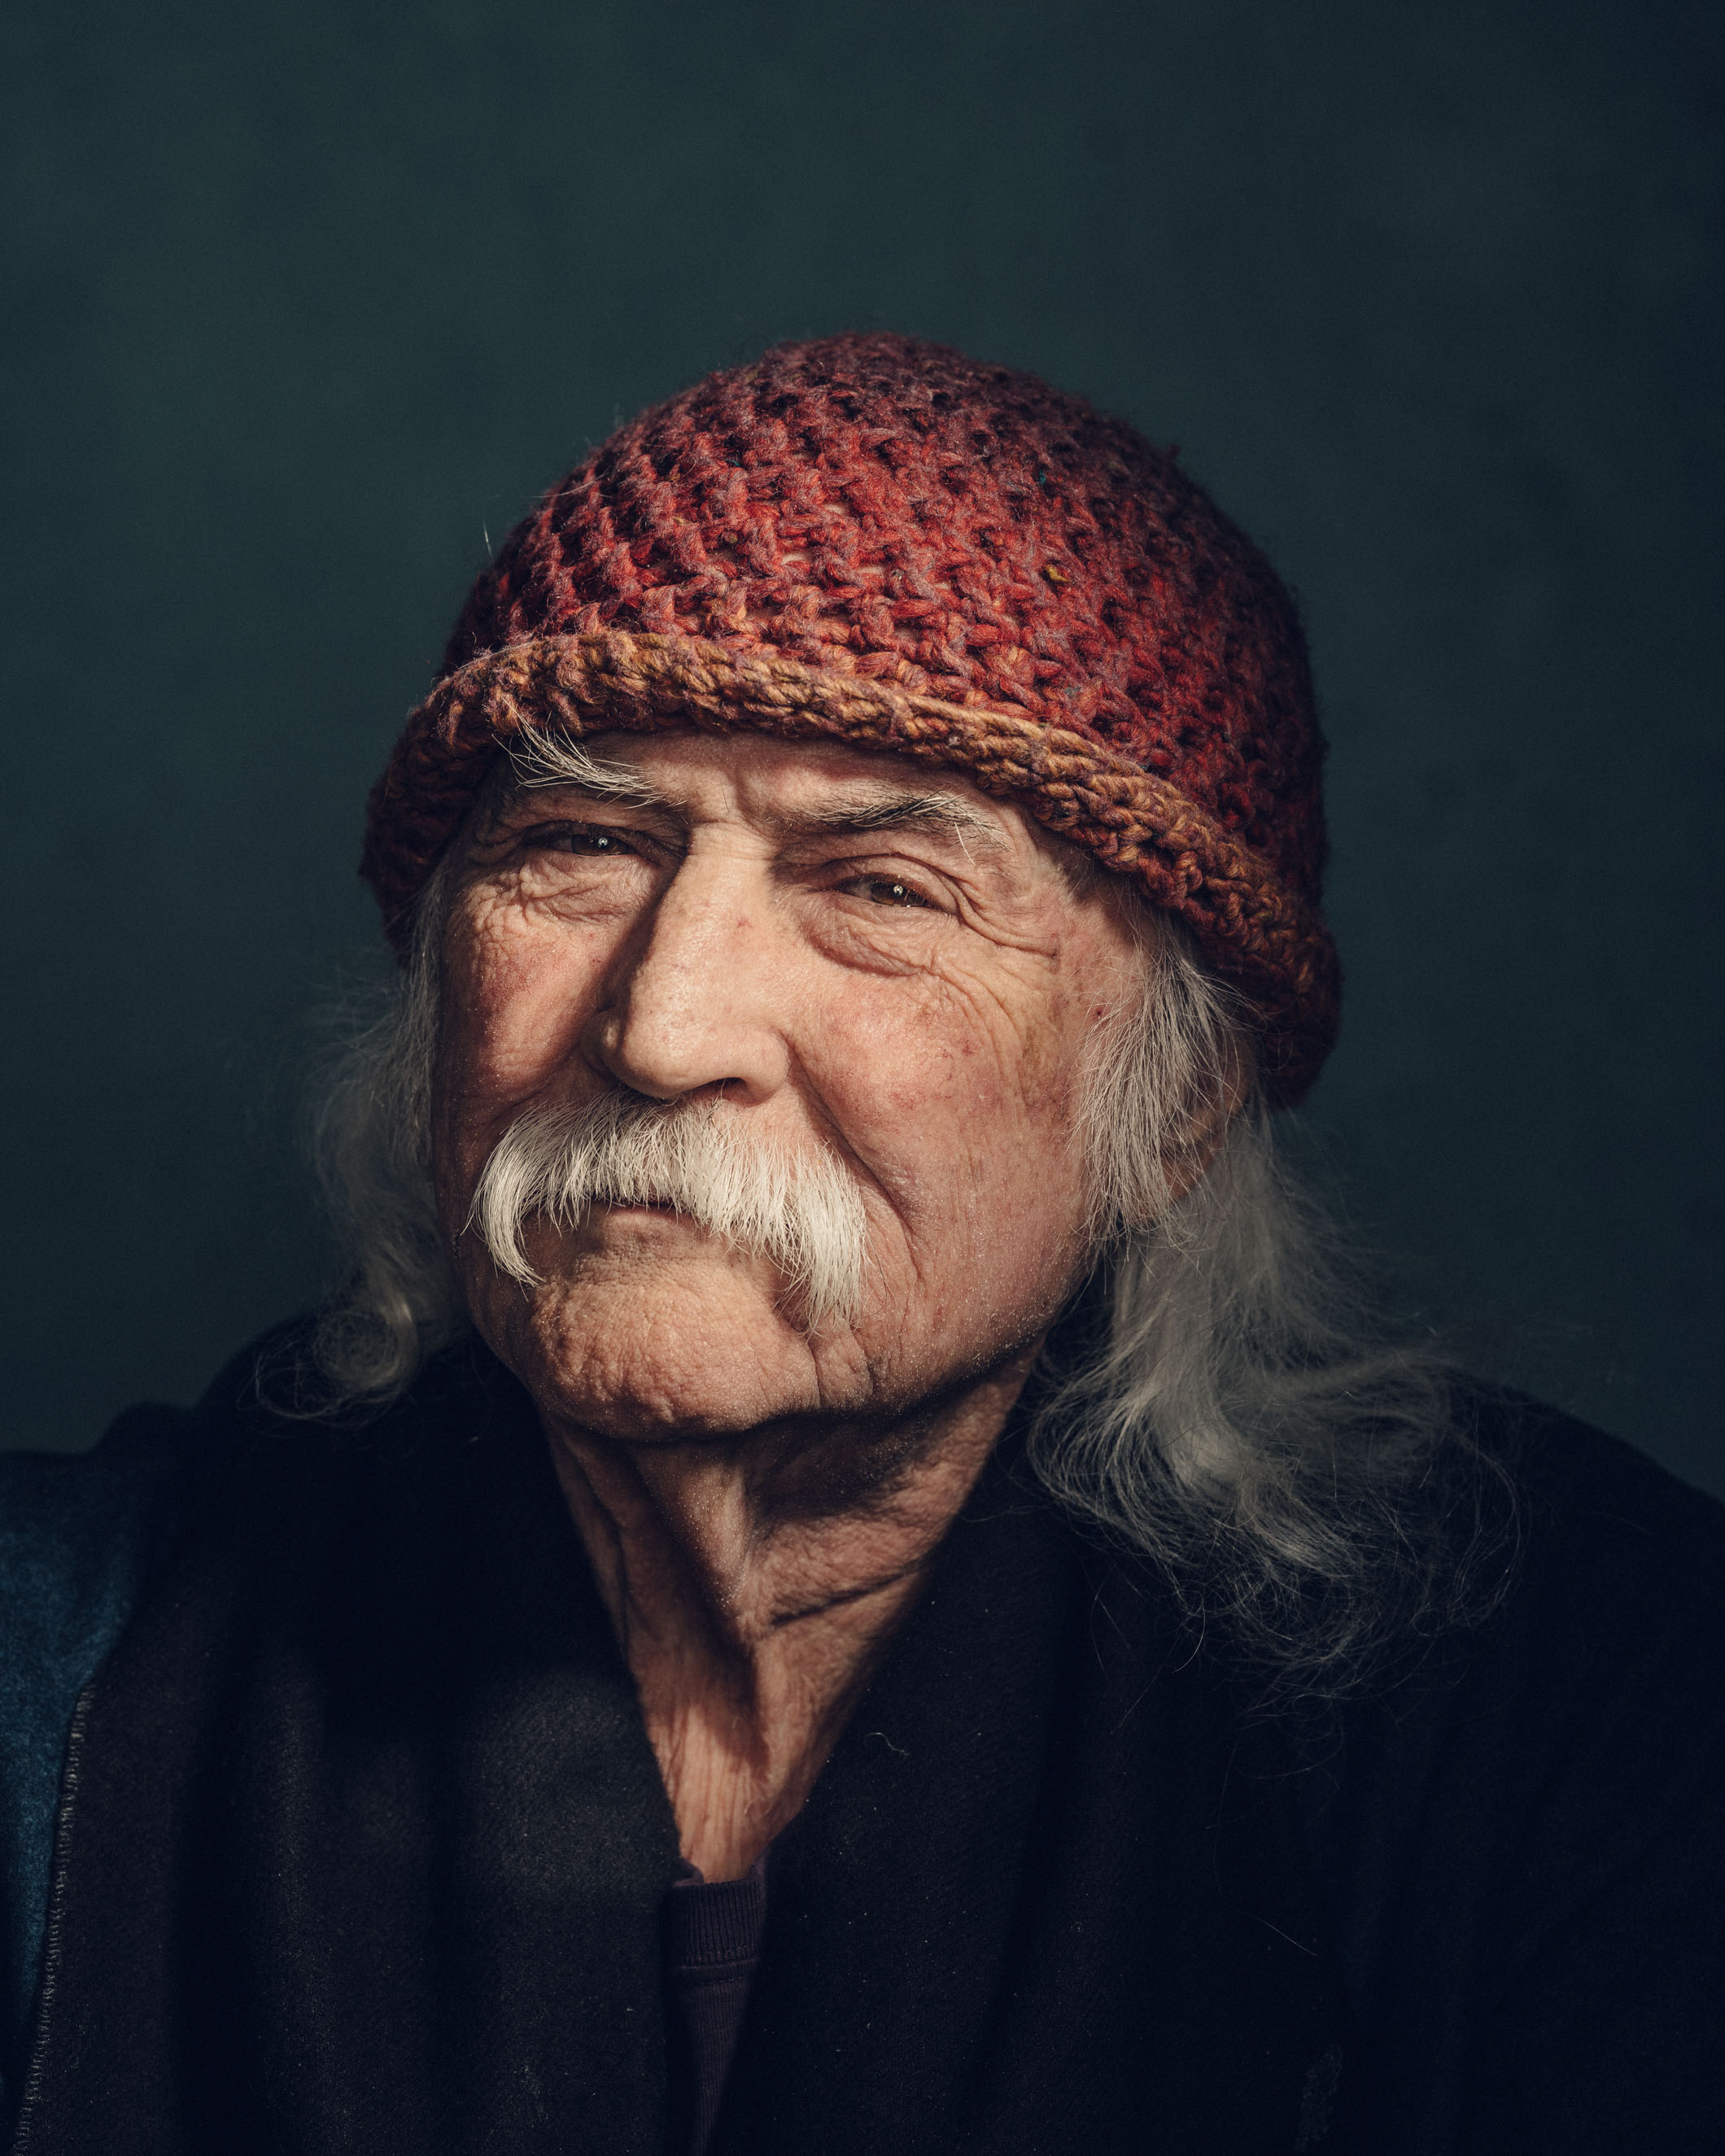 190125_12-RememberMyName_165_David_Crosby